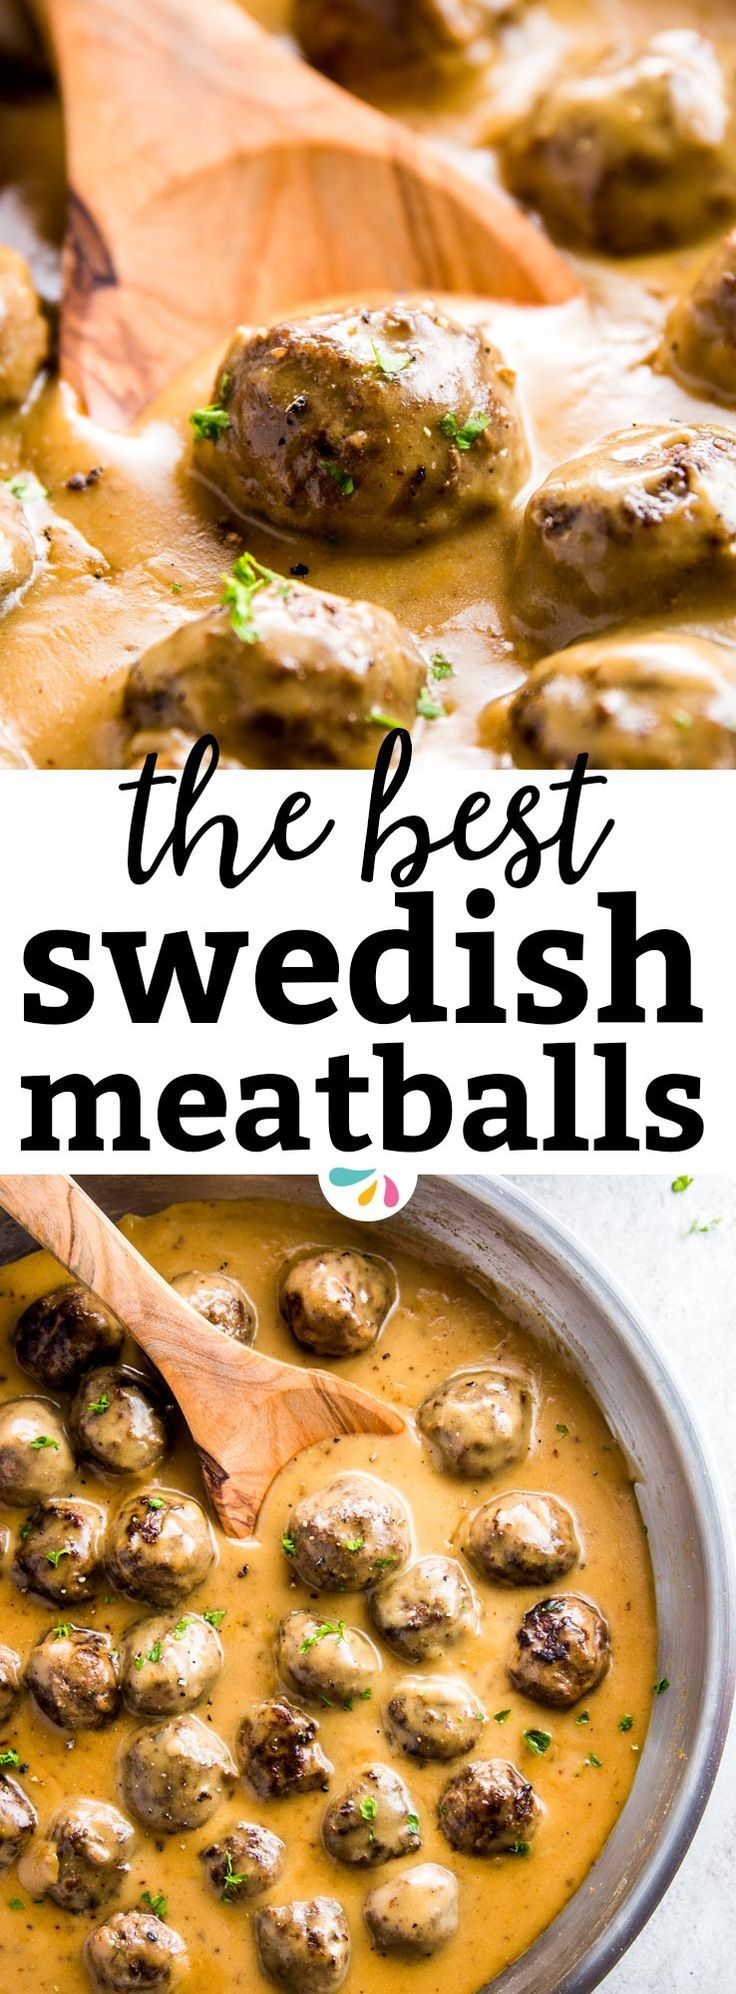 Easy Swedish Meatballs are homemade meatballs in a rich brown gravy sauce. They're simple to make and taste delicious - your whole family will love them, they really are the best! Try them for dinner with mashed potatoes or egg noodles tonight - better than a trip to IKEA! | #recipes #meatballs #beef #beefrecipes #kidfriendly #comfortfood #food